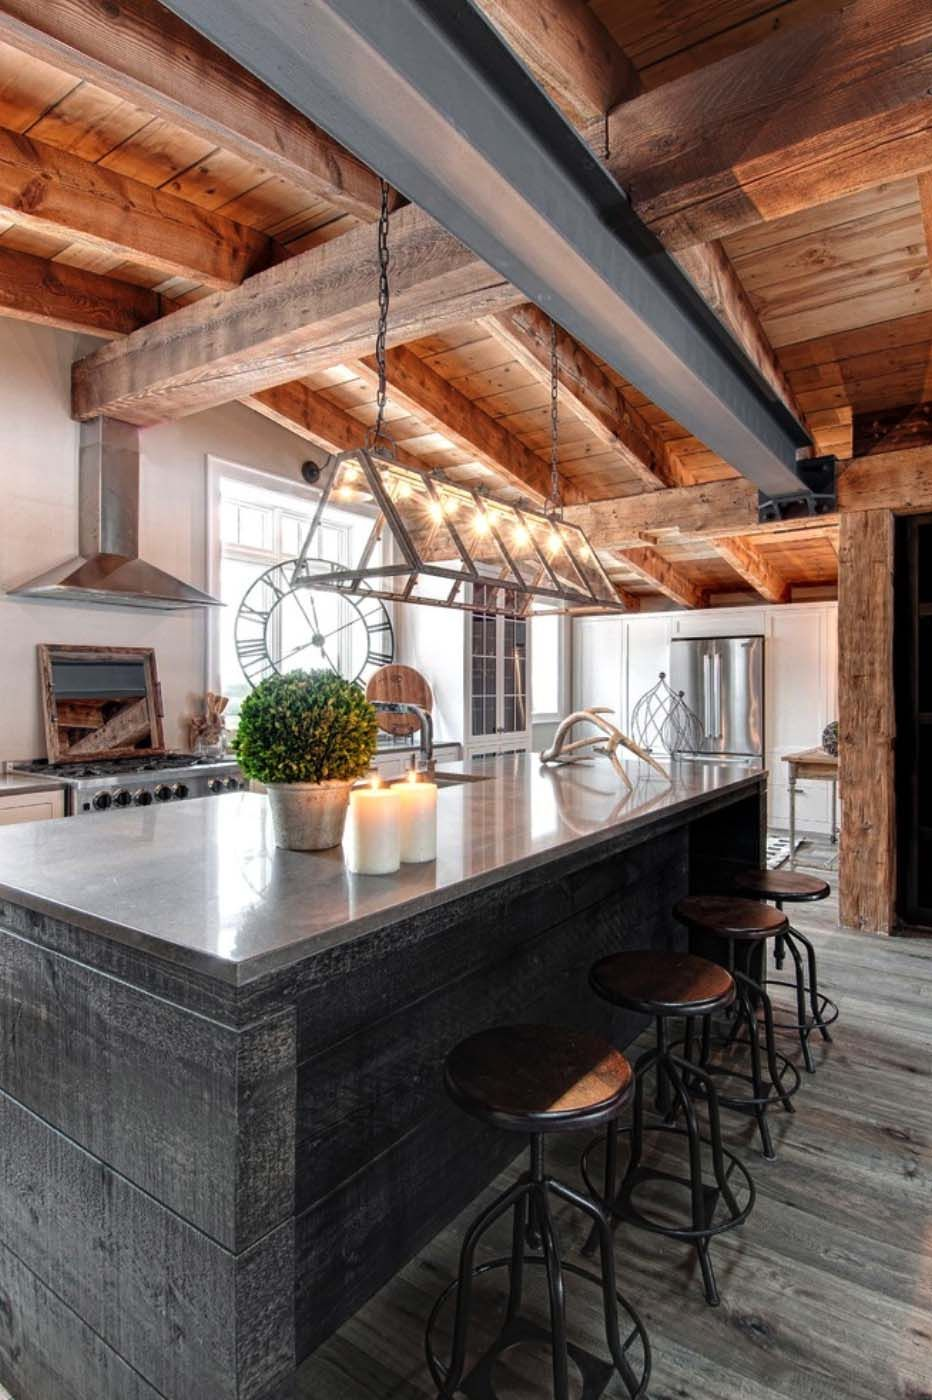 Luxury Canadian Home Reveals Splendid Rustic-modern